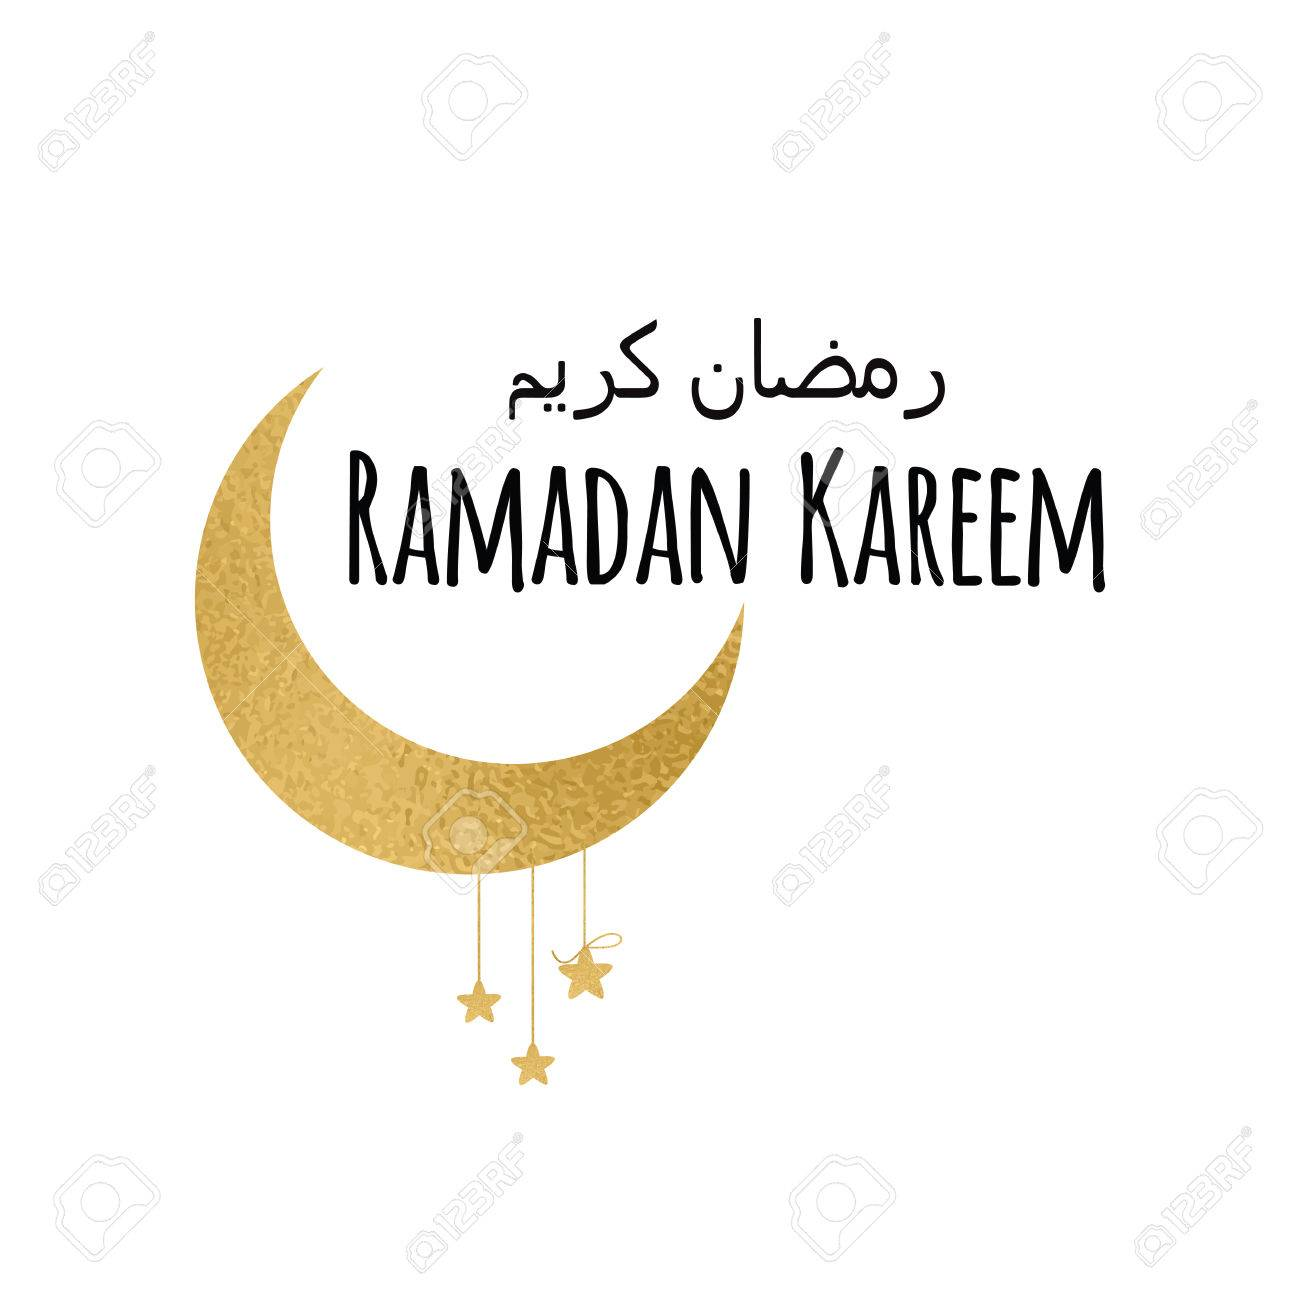 Creative vector crescent moon and star for holy month of muslim creative vector crescent moon and star for holy month of muslim community ramadan kareem celebration biocorpaavc Gallery